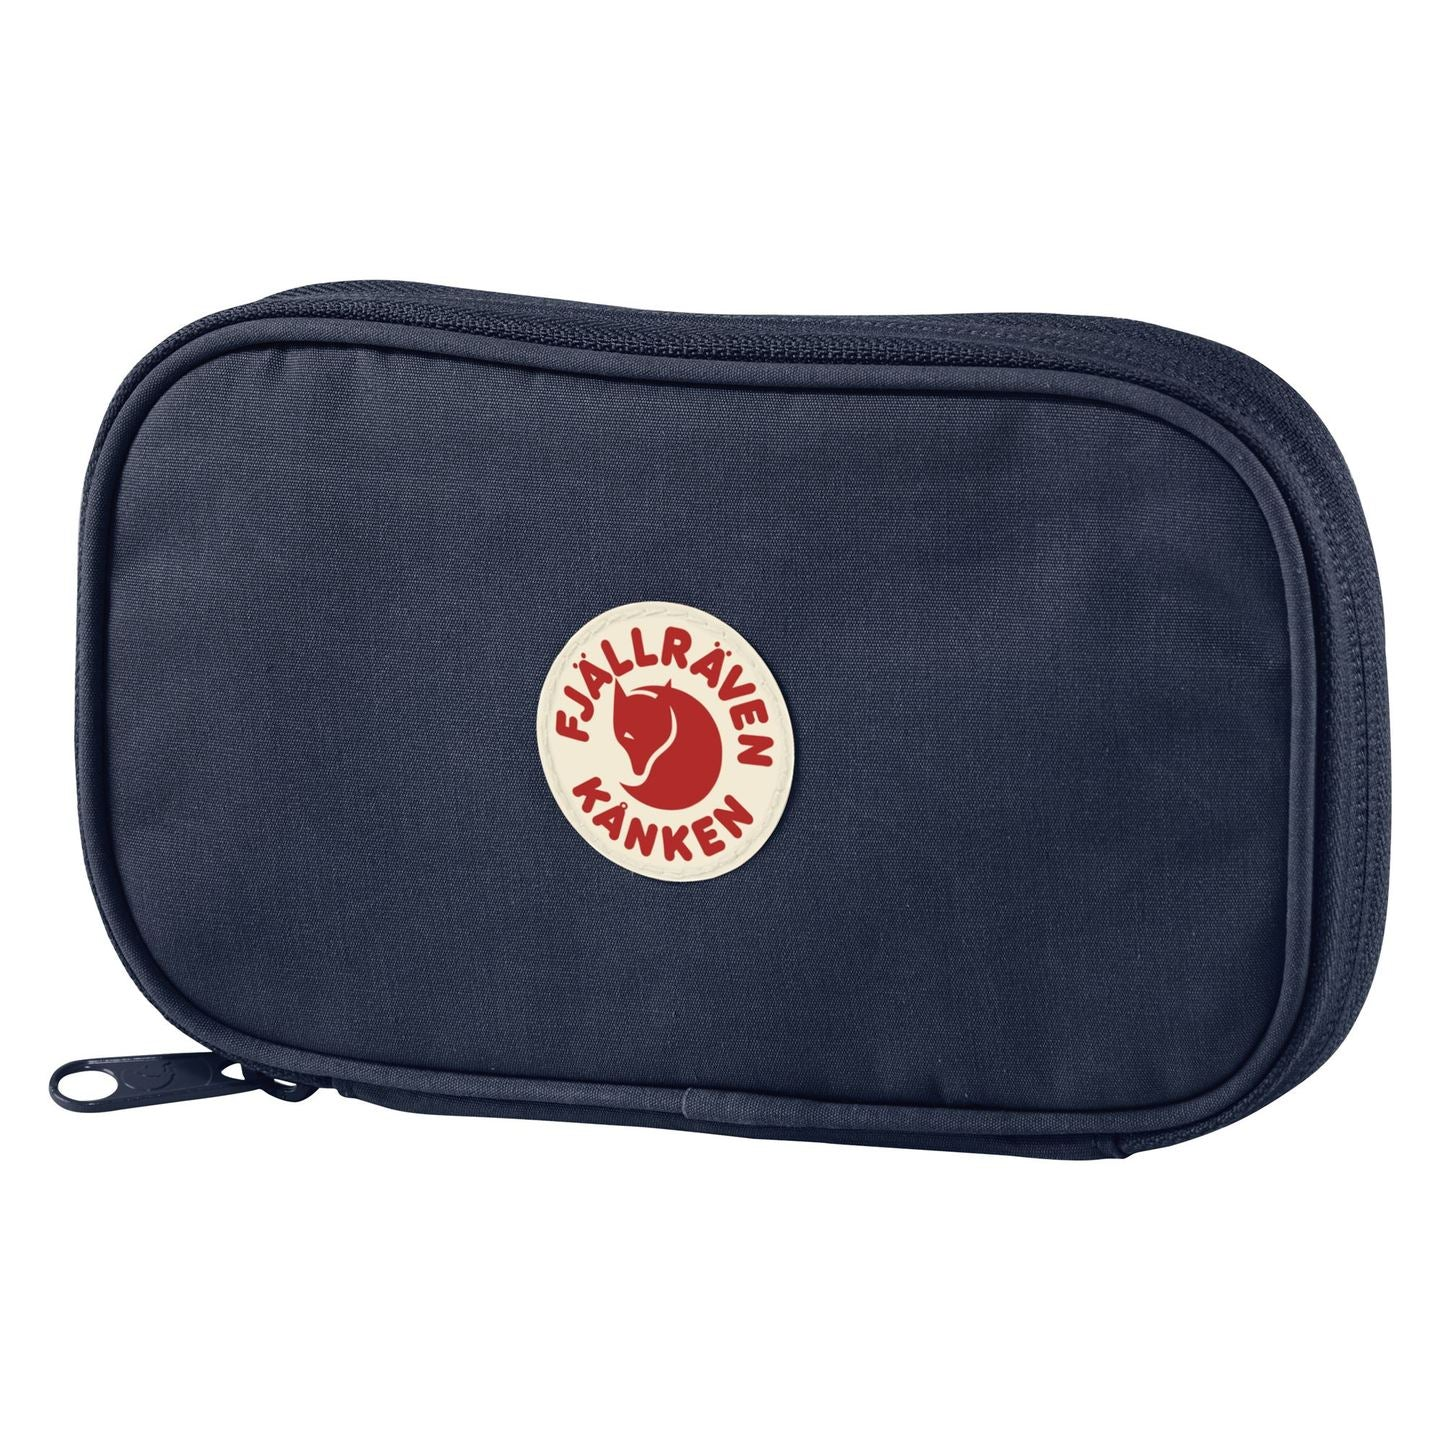 Fjallraven Kanken Travel Wallet - Navy - Find Your Feet Australia Hobart Launceston Tasmania